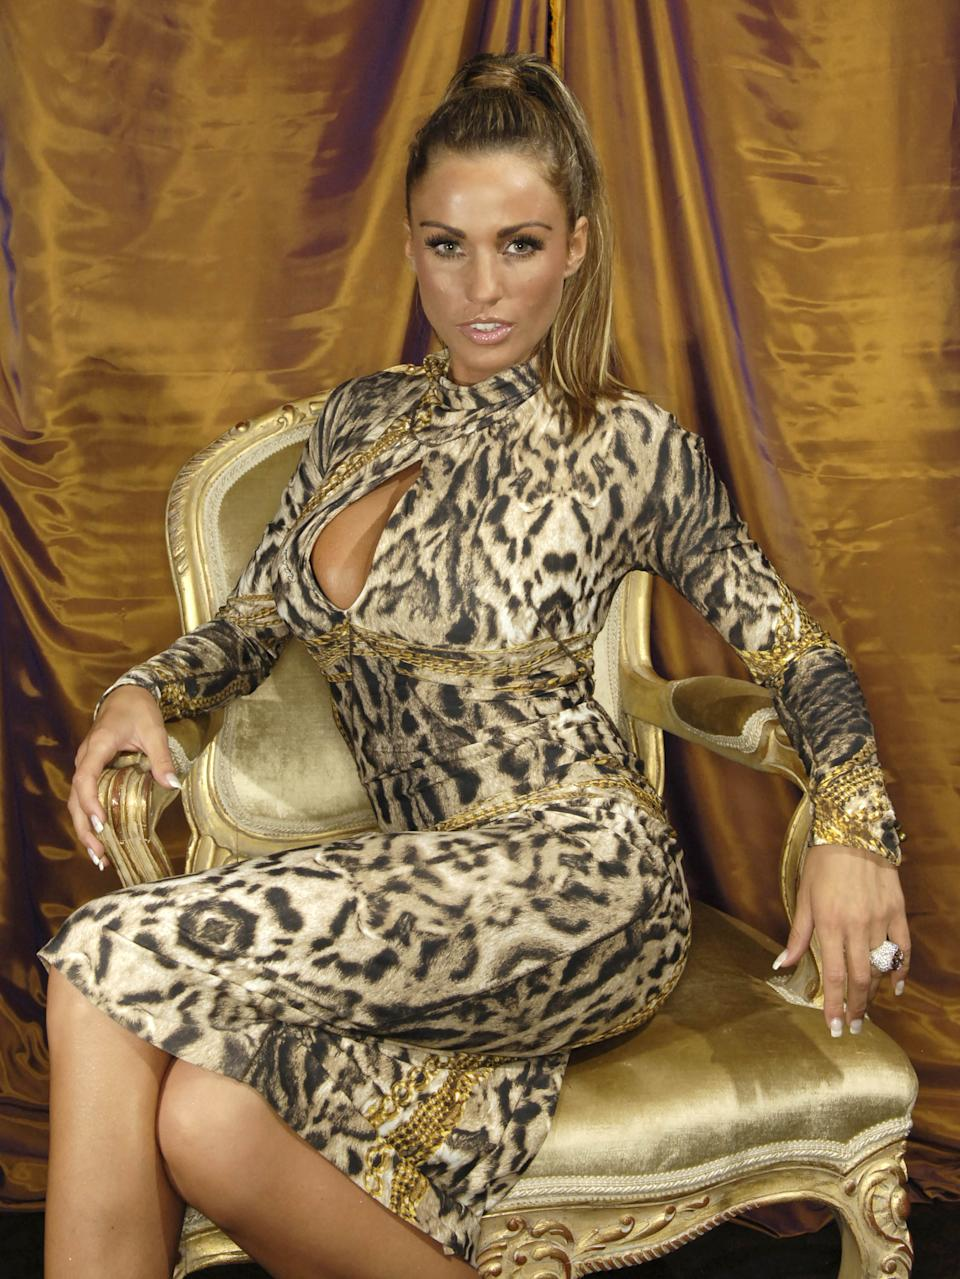 Katie Price at the Dorchester Hotel in London, United Kingdom. (Photo by Nick Harvey/WireImage)